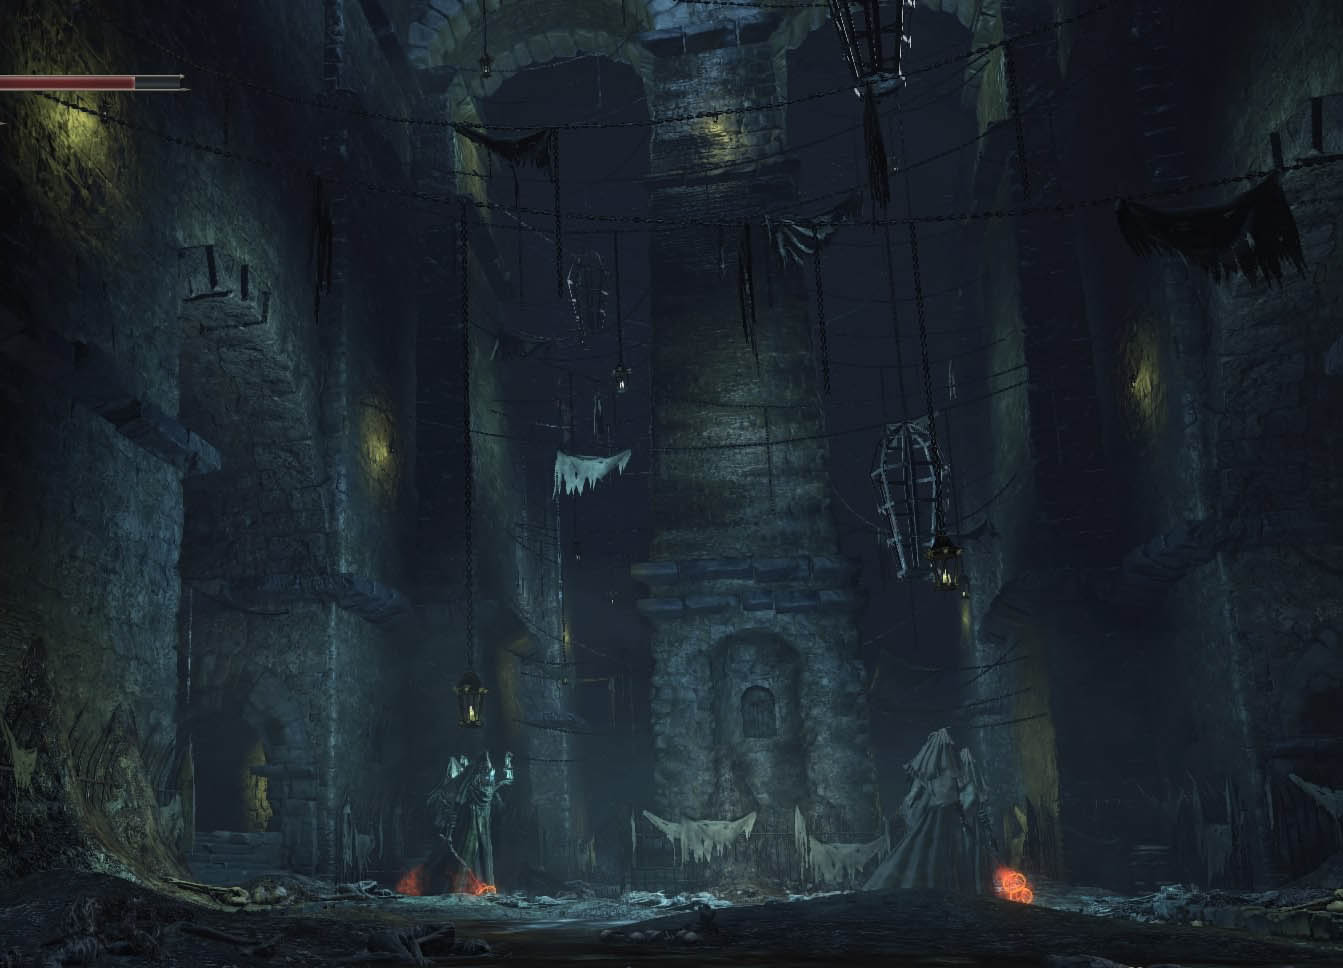 Dark Souls III Подземелье Иритилла (Irithyll Dungeon)